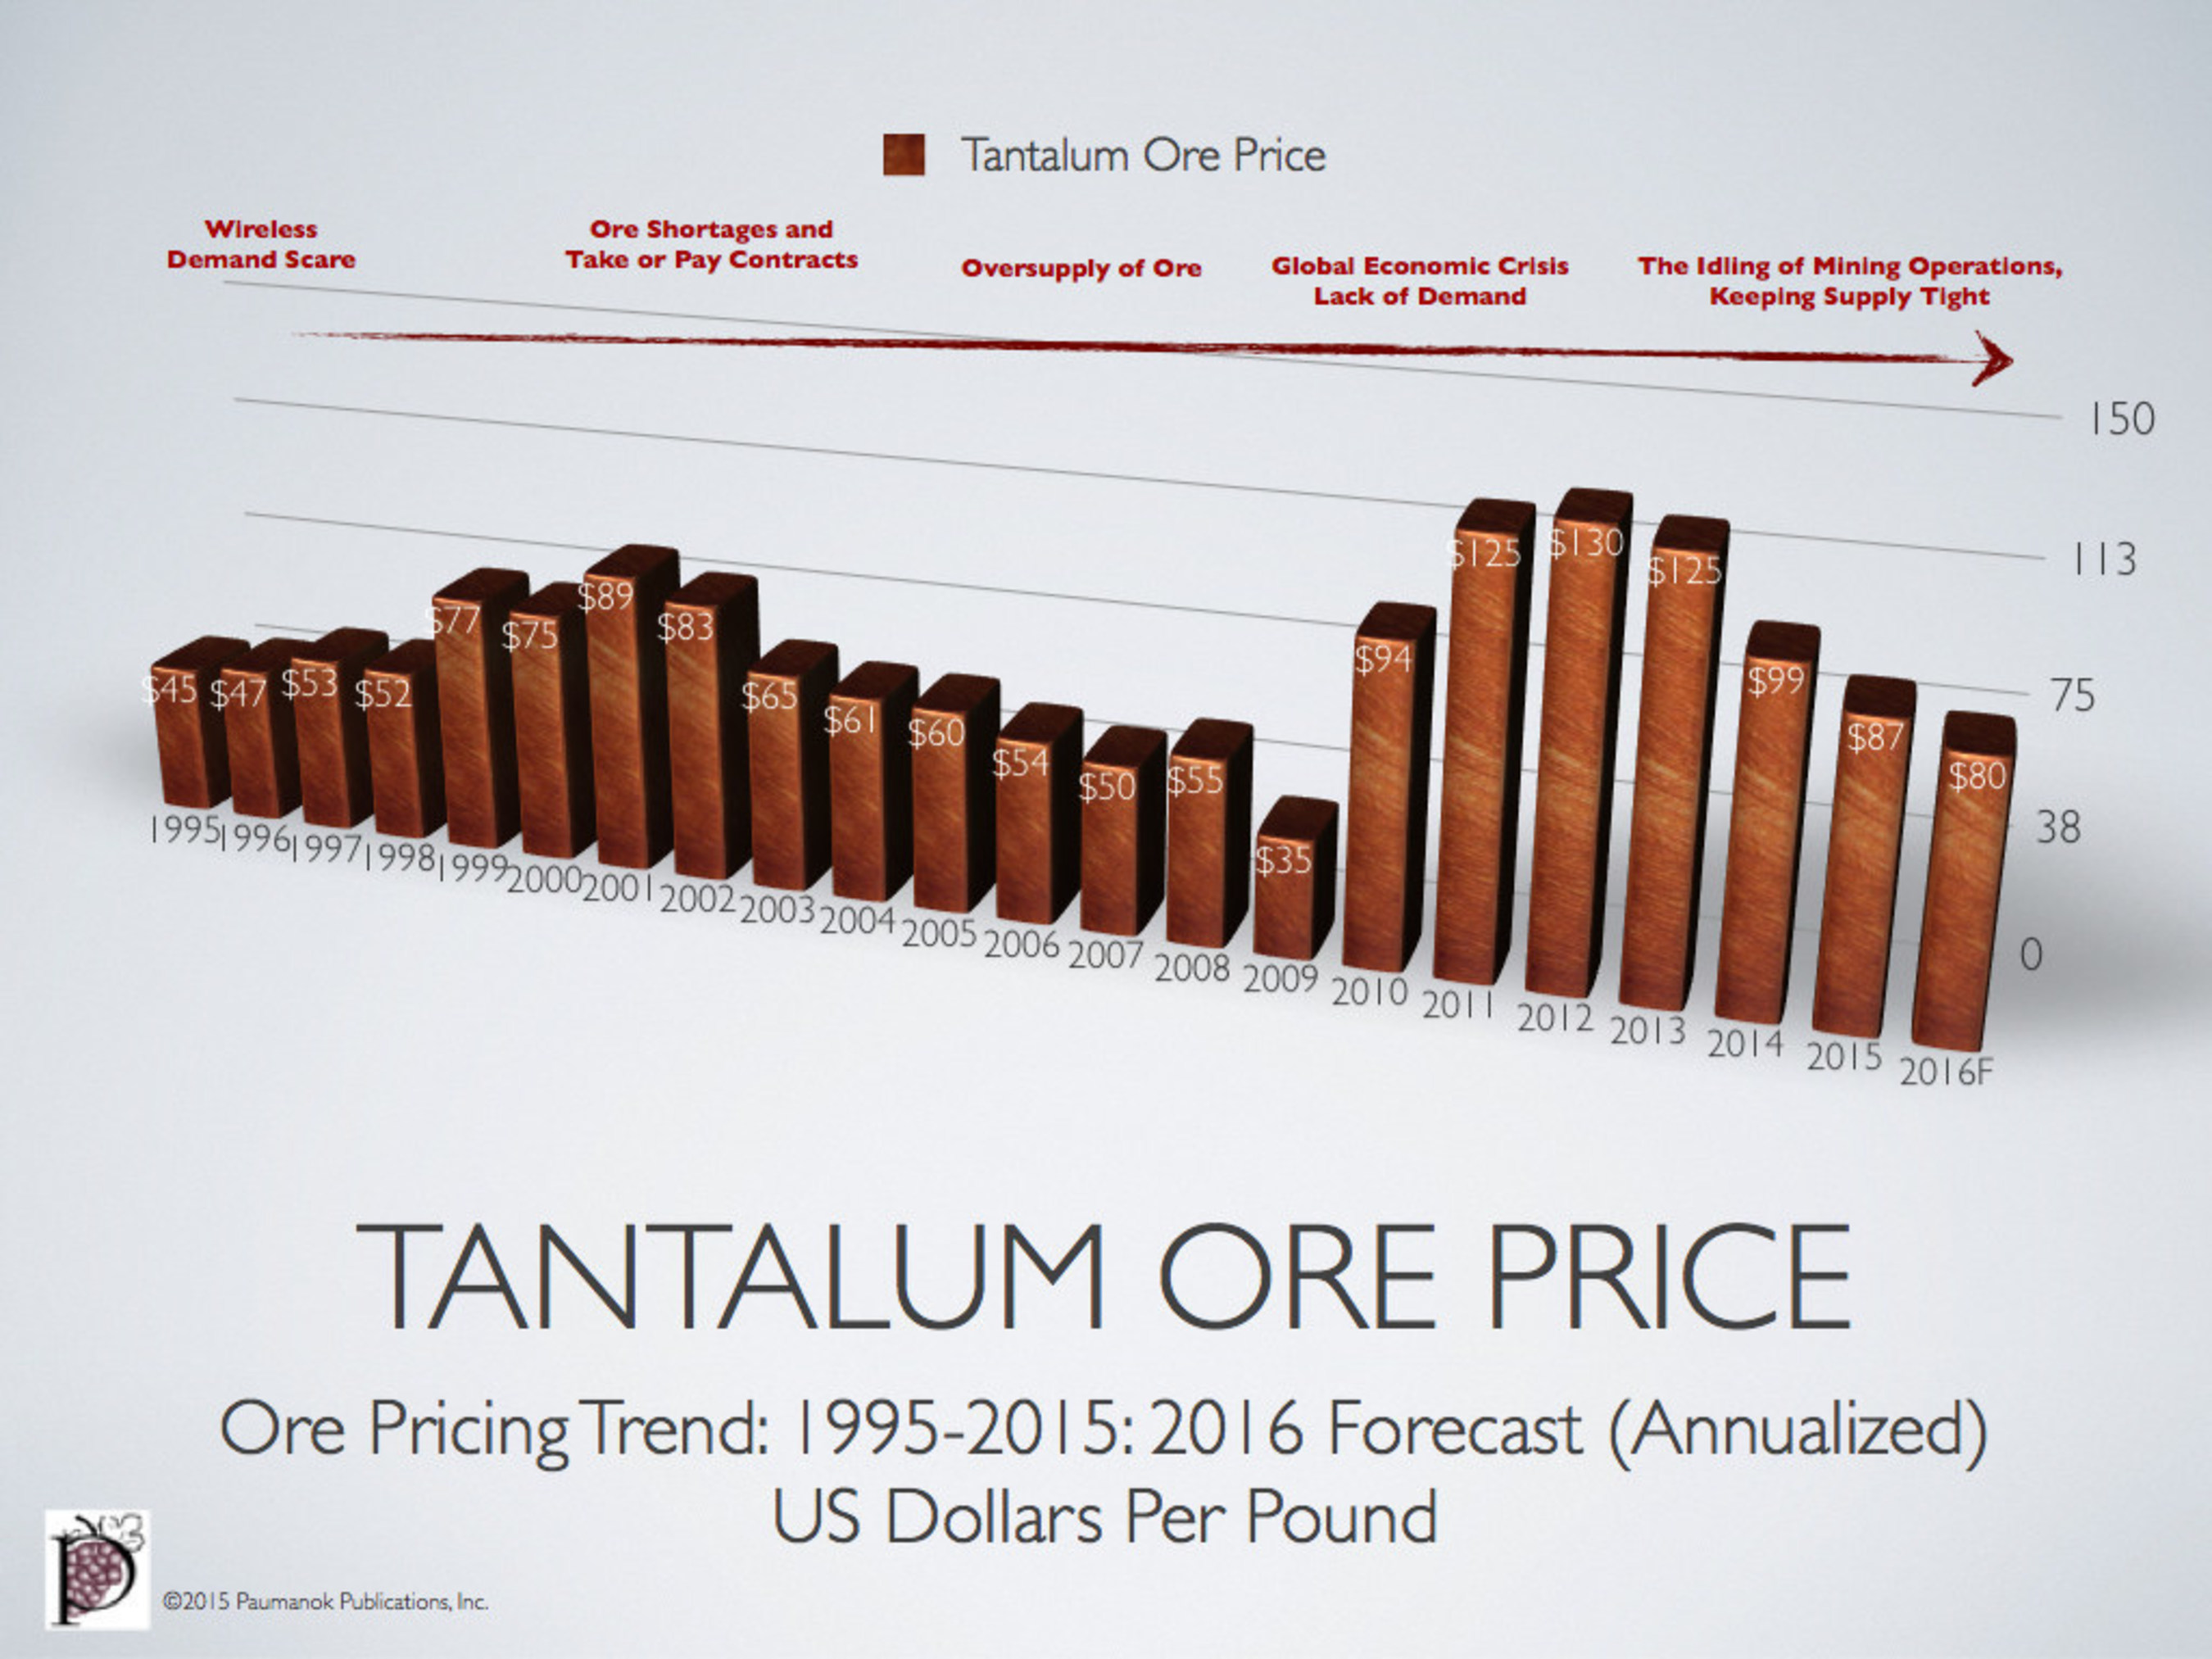 Tantalum Ore Pricing Reflects Challenging Supply Chain